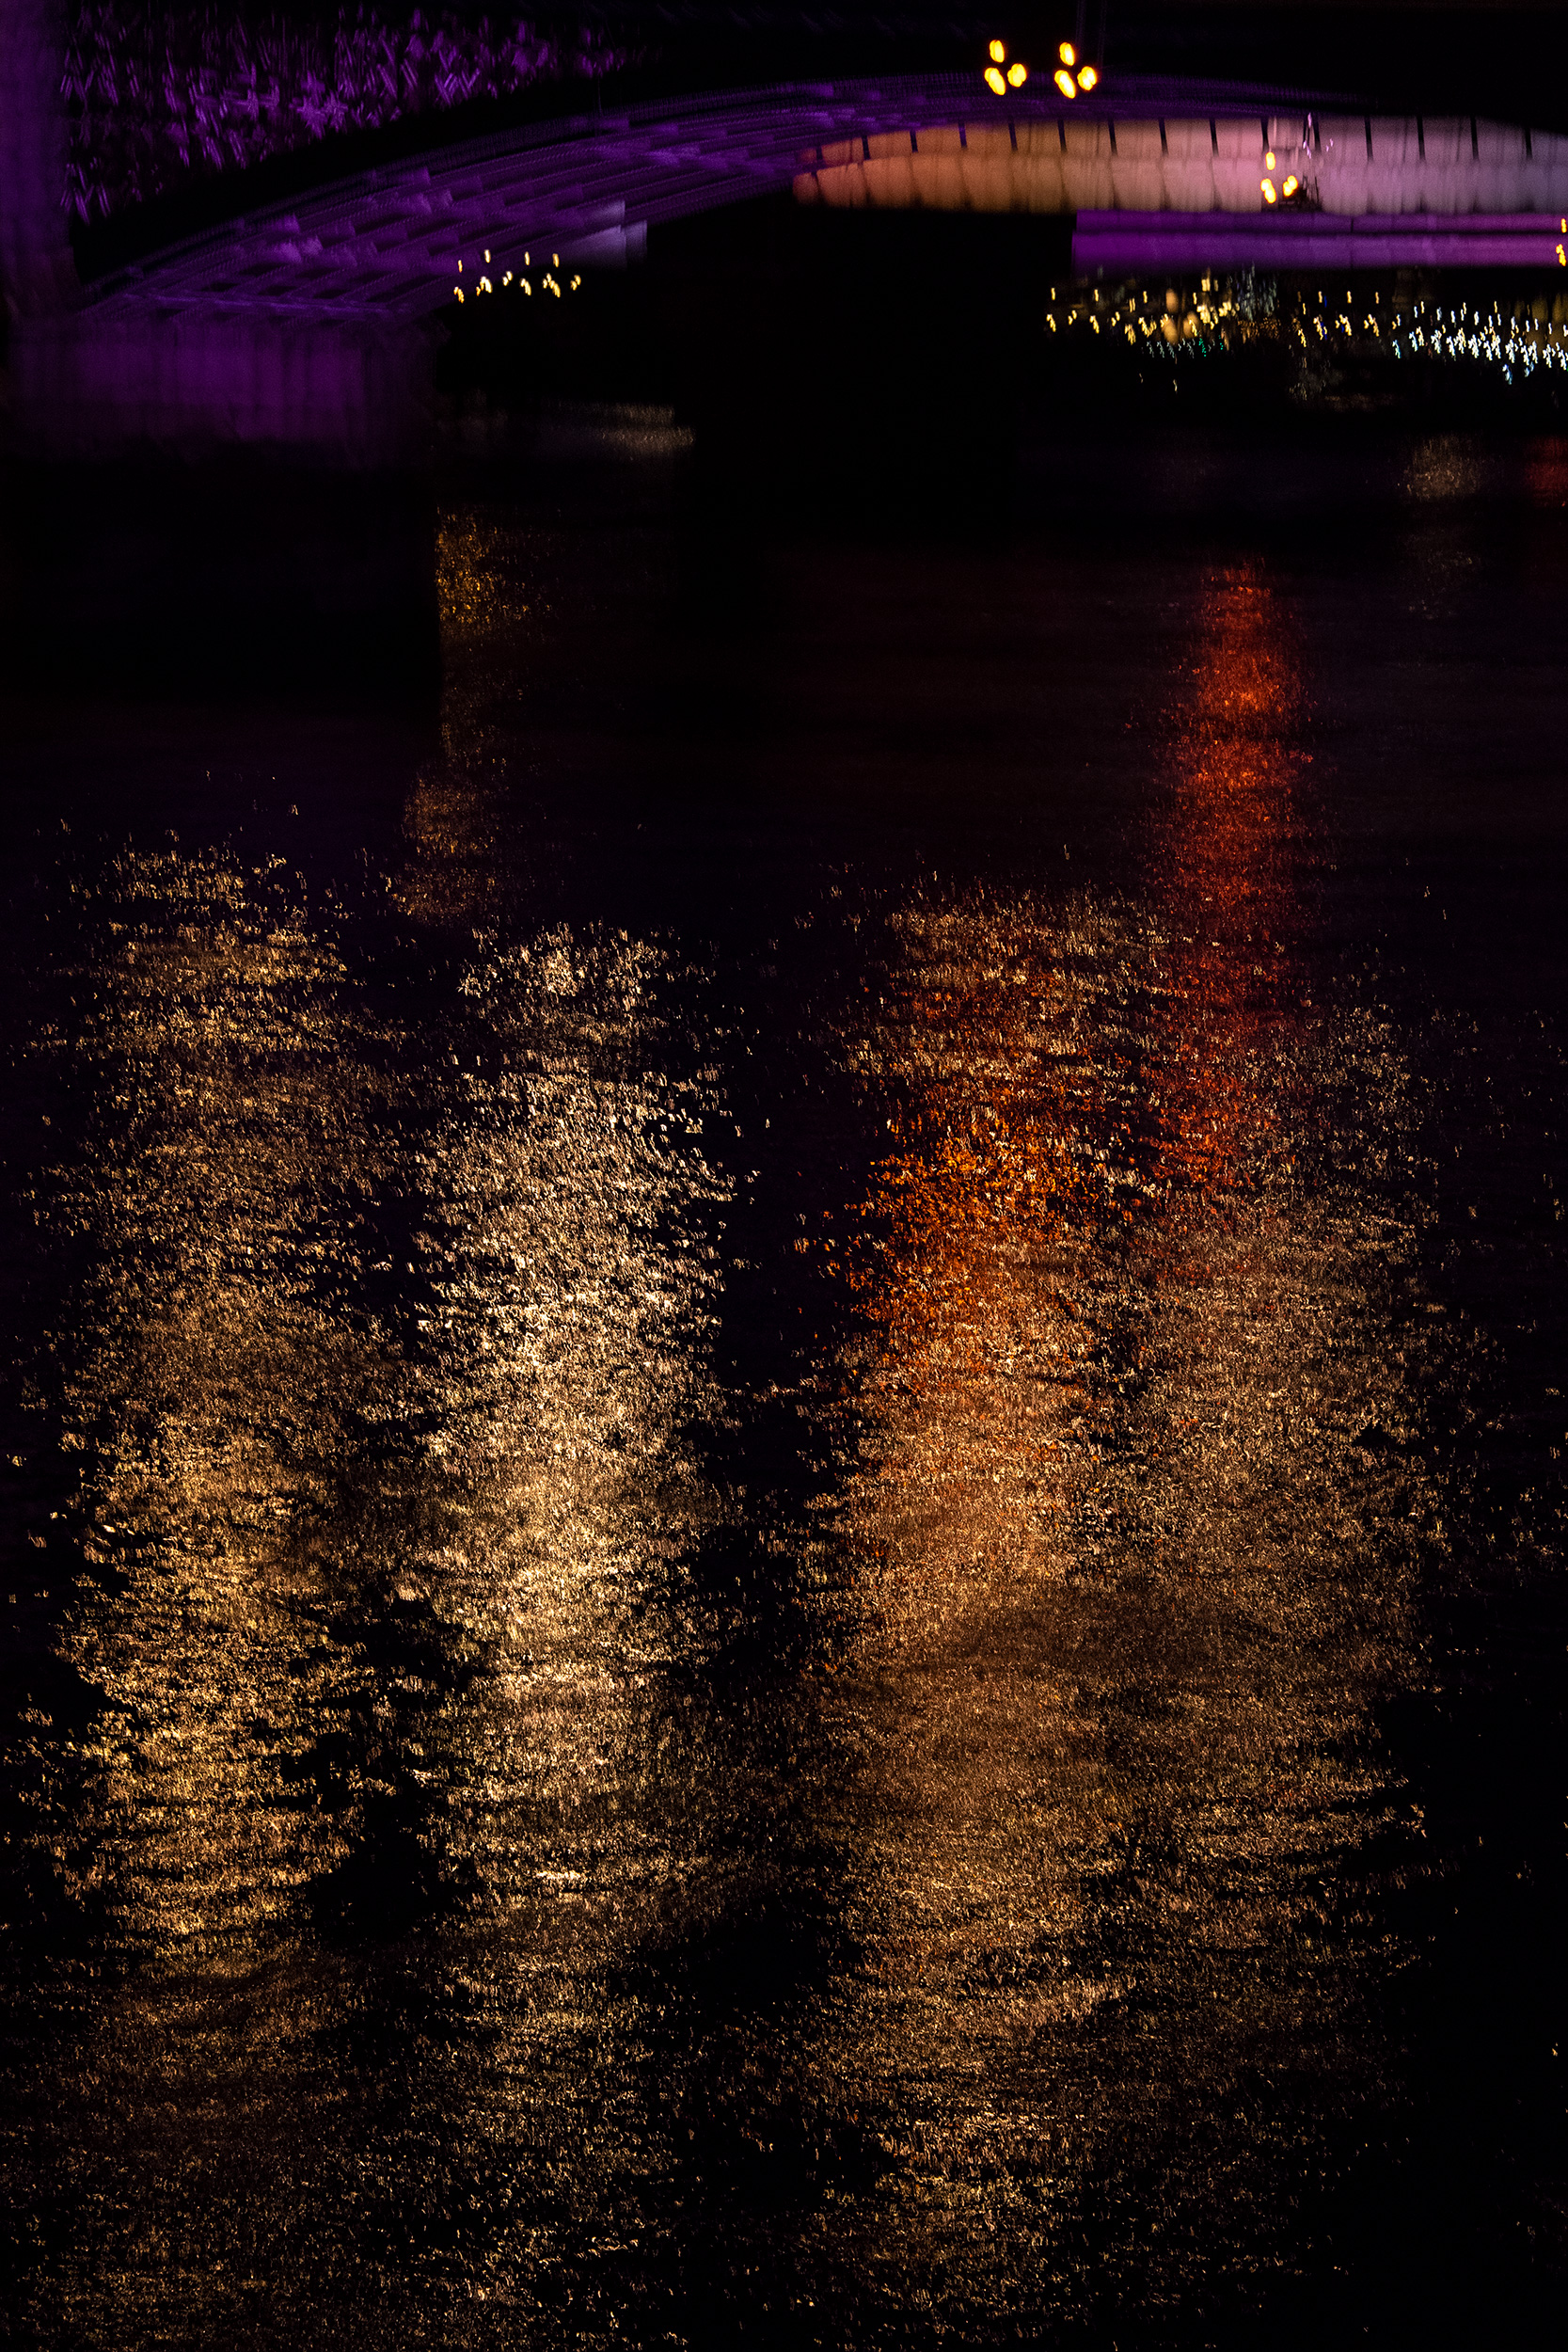 Illuminated River 9, London